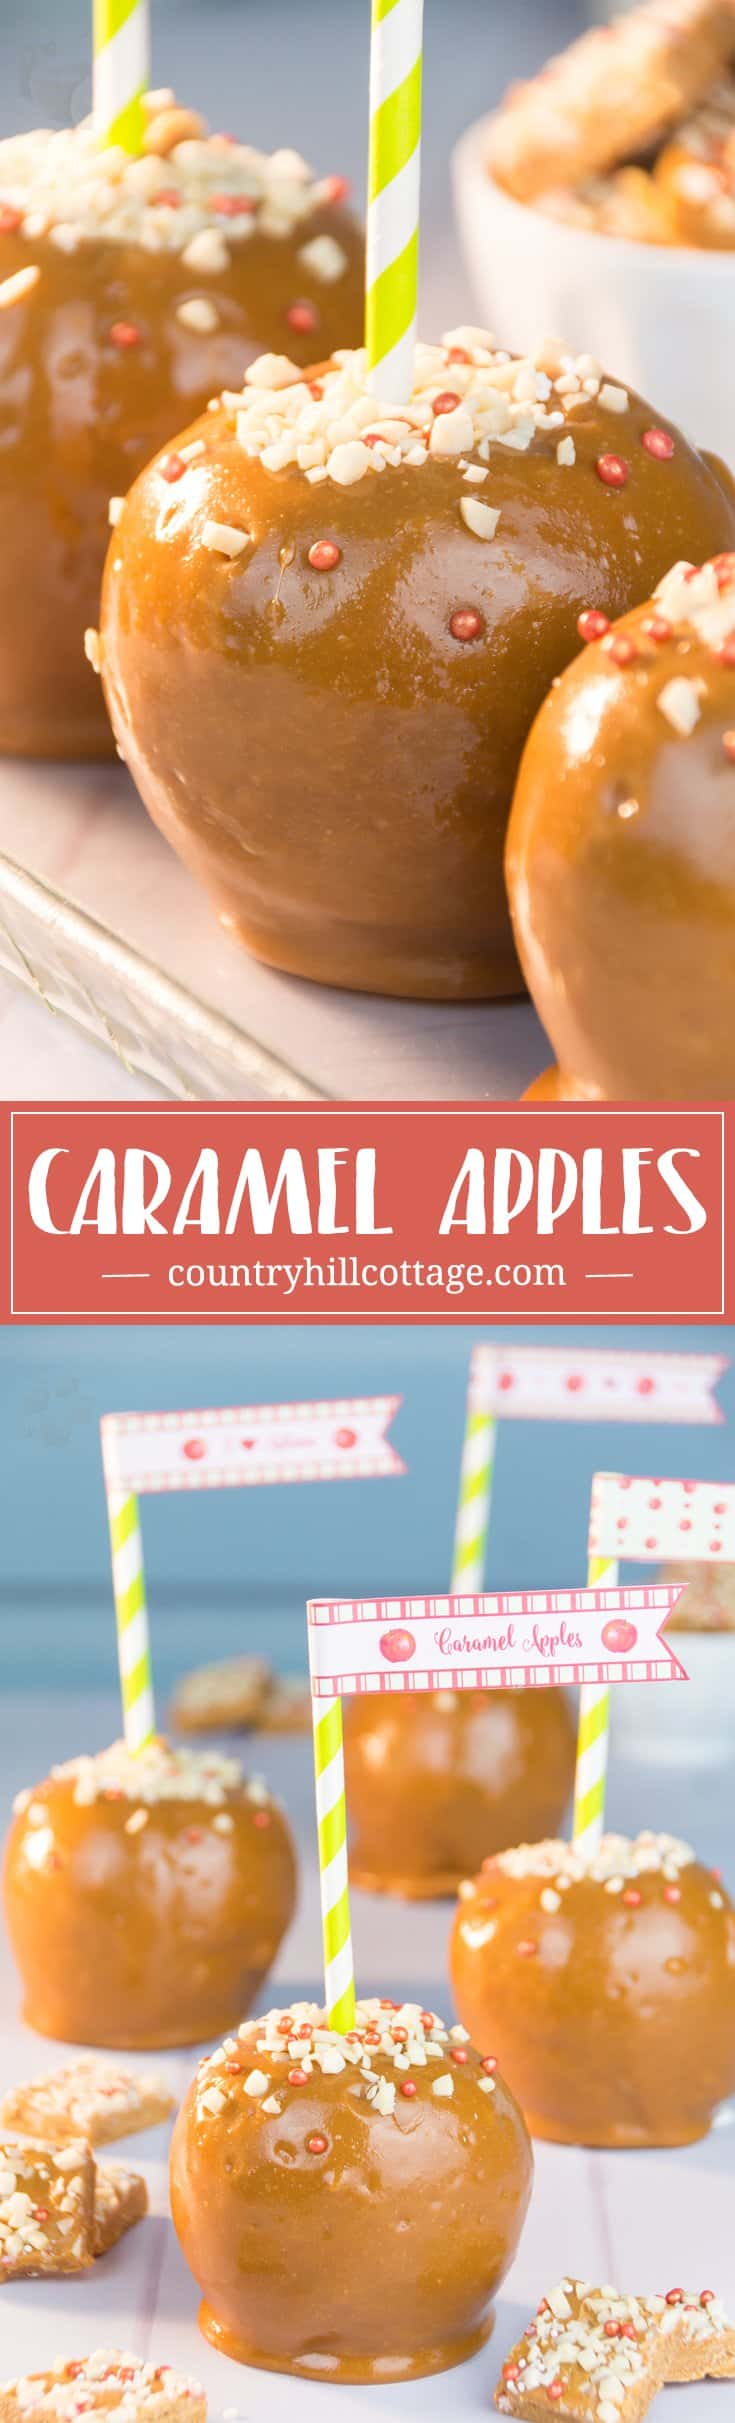 Are you ready for the quickest caramel apples ever? In our series about apple DIYs, we share our easy and quick recipe for the most scrumptious caramel apples! #caramelapples #candyapples #apples | countryhillcottage.com